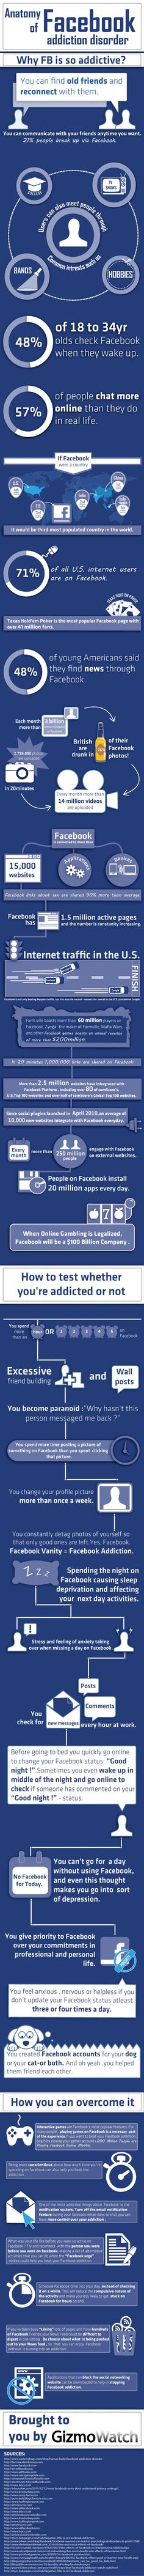 Anatomy of Facebook addiction disorder